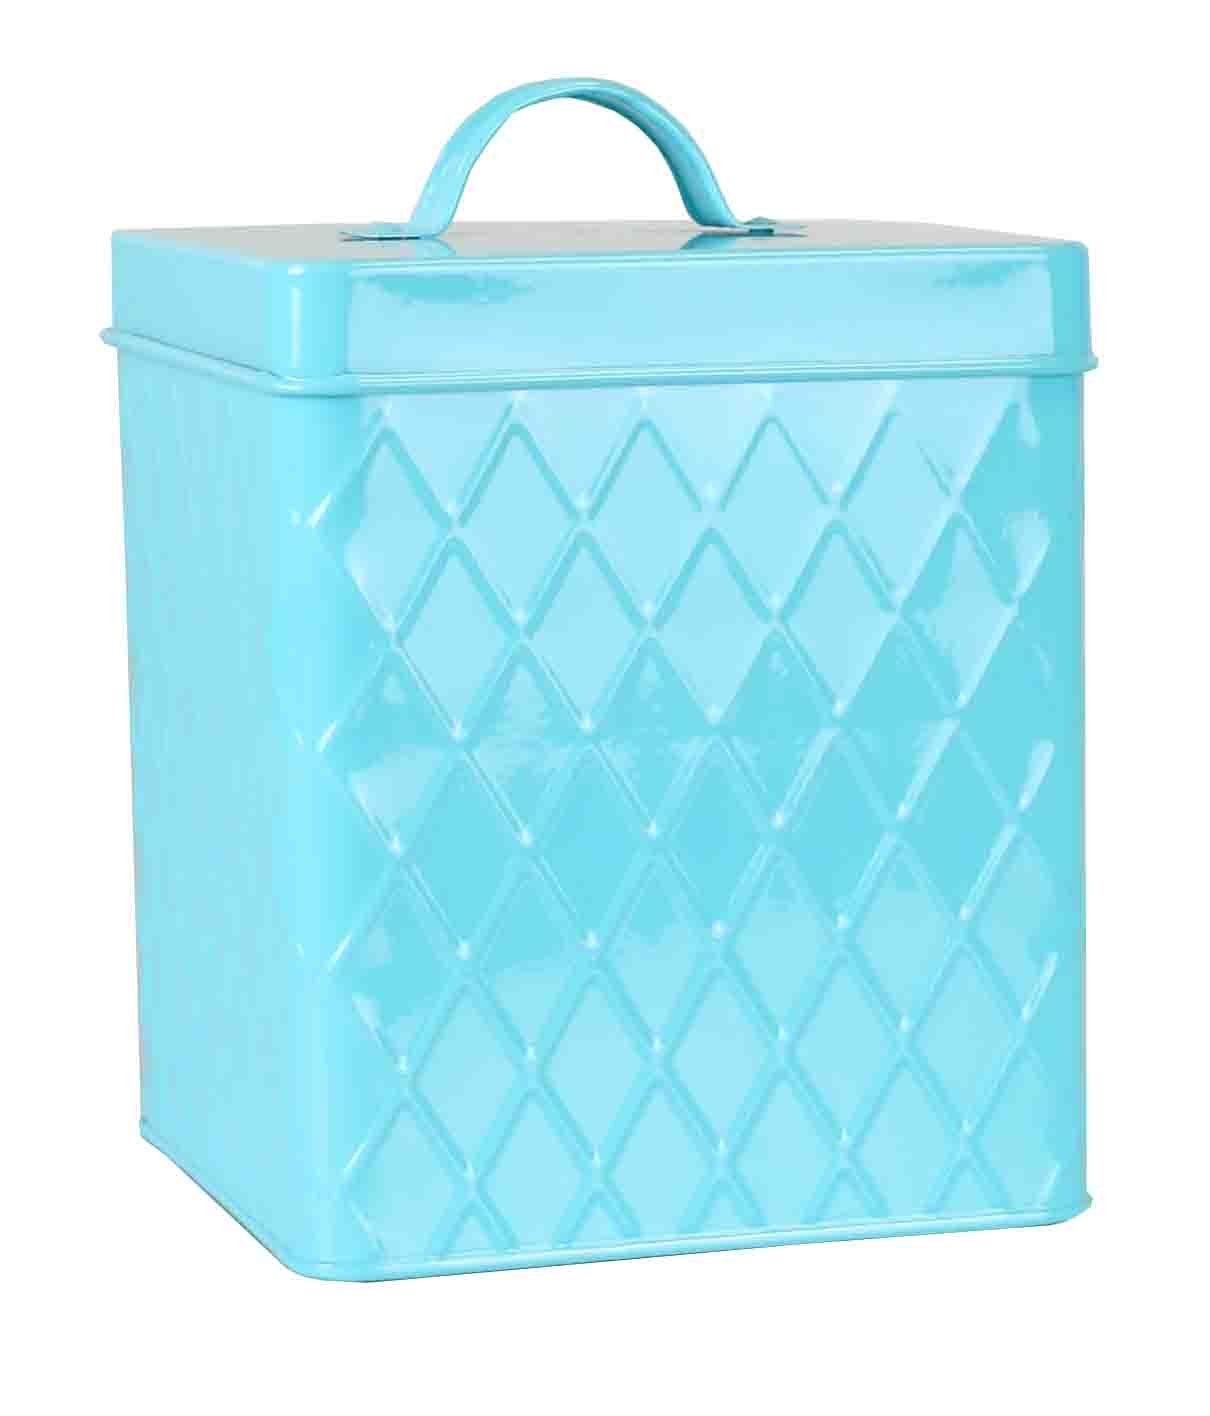 Home Basics Tin Canister/Container for Kitchen Tea, Coffee, Sugar, Cookies, Food, Flour, Baked Goods & Laundry Storage, Small Cover, Turquoise